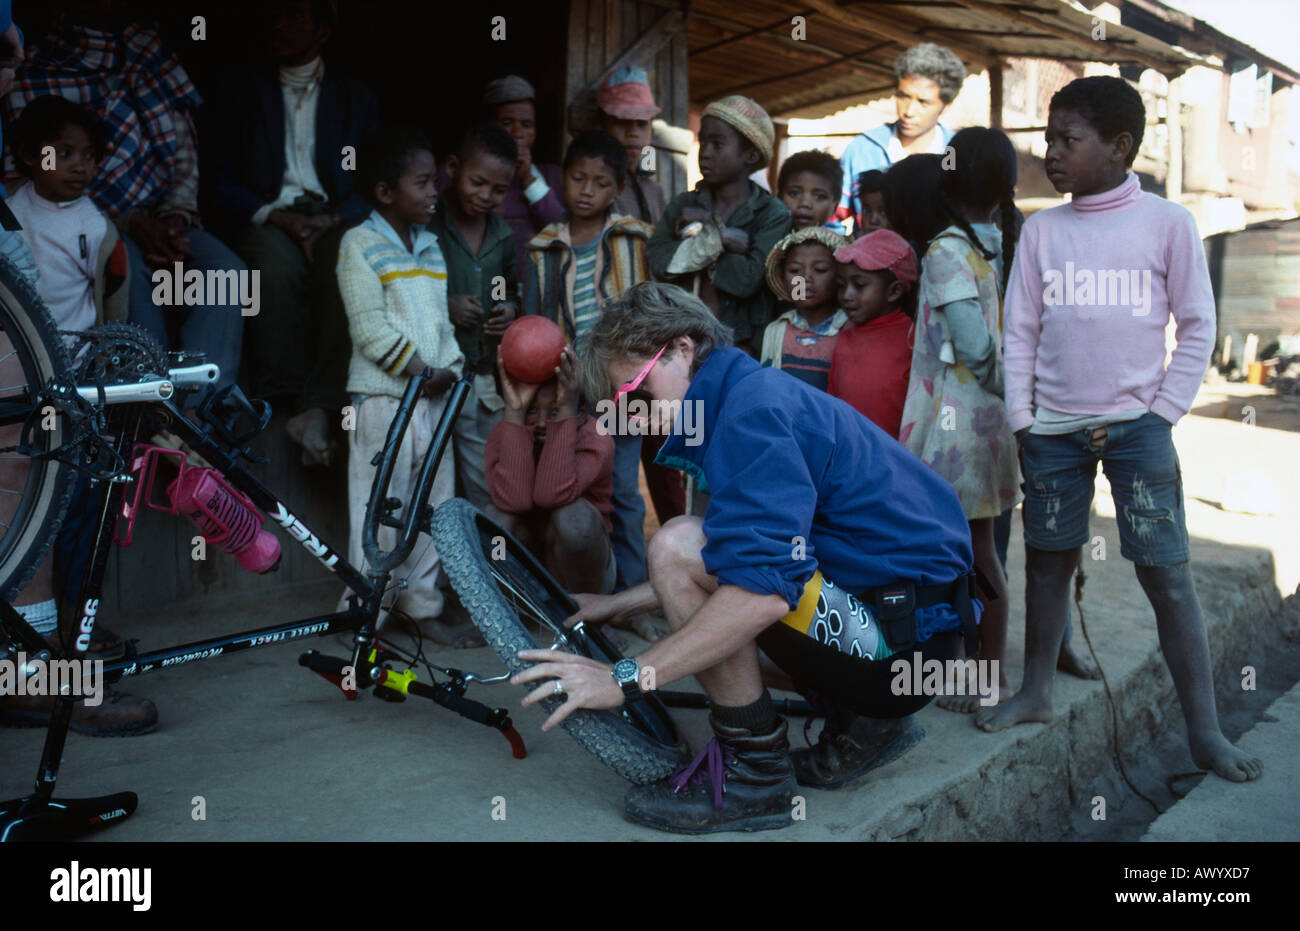 Sean O'Kelly mending a puncture on his mountain bike during the Tran-Madagascan Mountain Biking Expedition Stock Photo